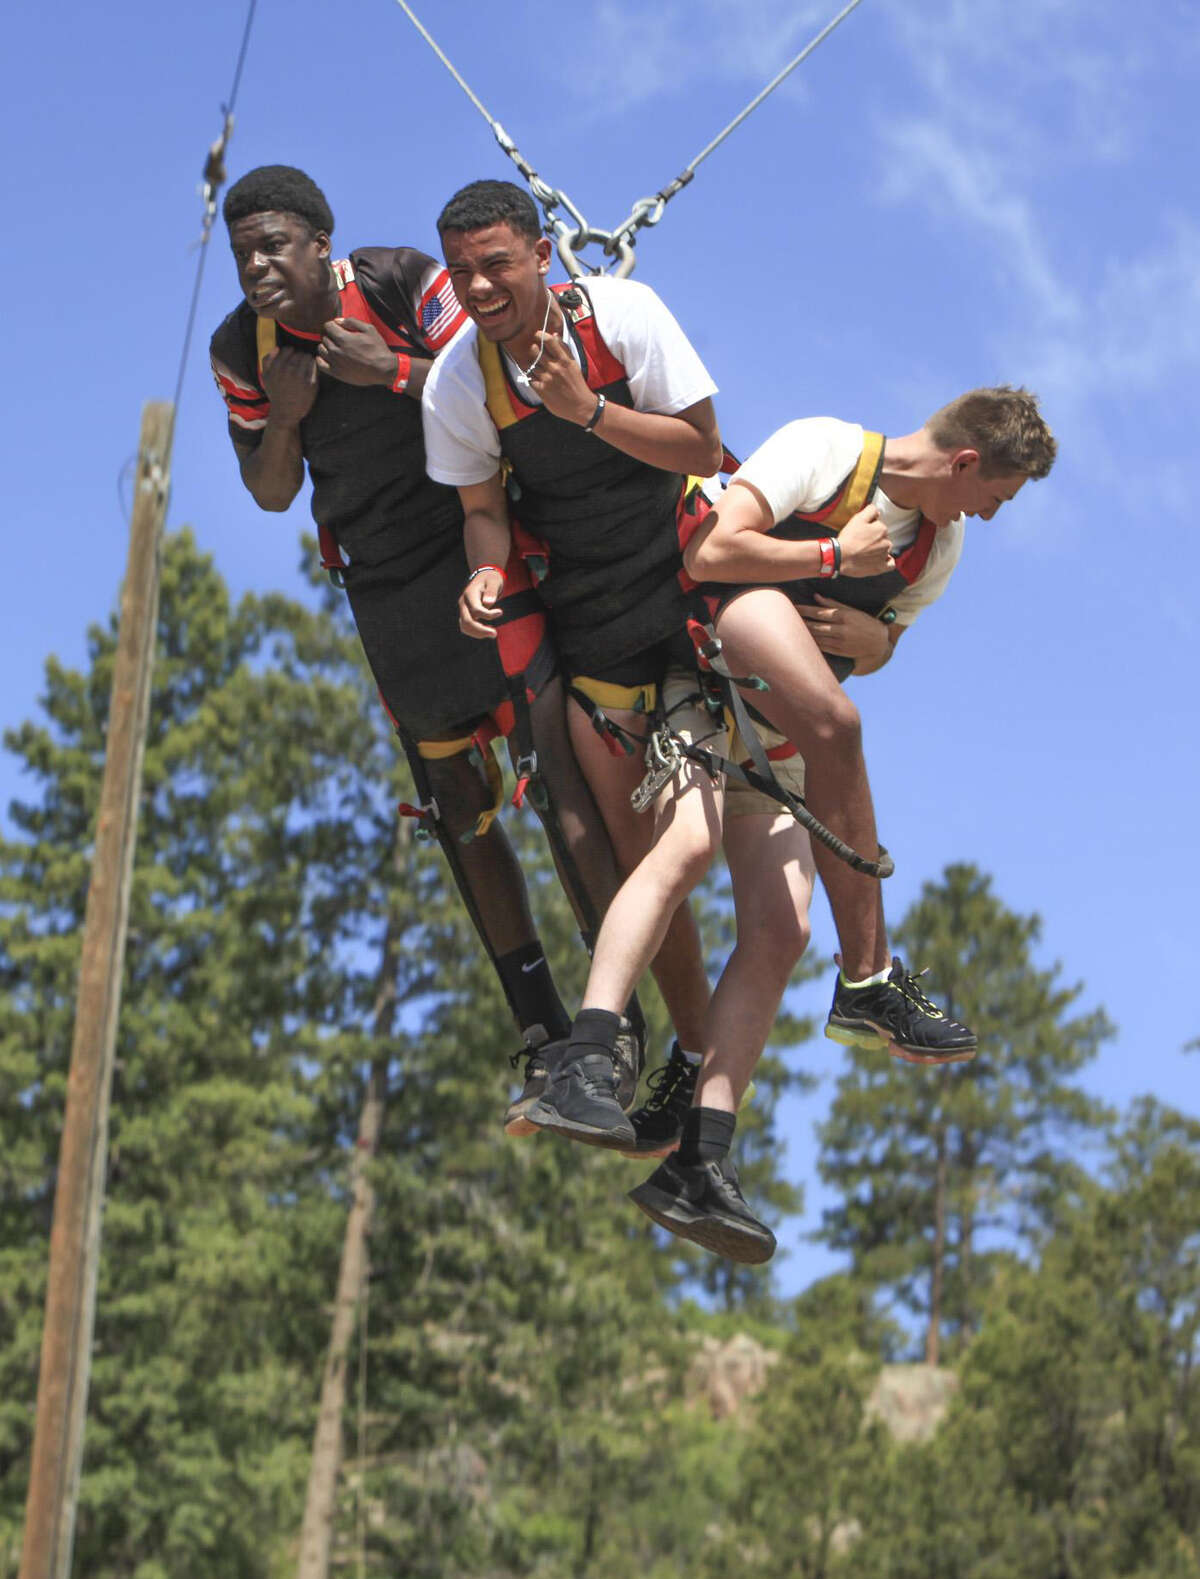 One of the activities was the giant swing at SGY 2019 Camp in Glorieta, NM. Photos courtesy of Stonegate Fellowship